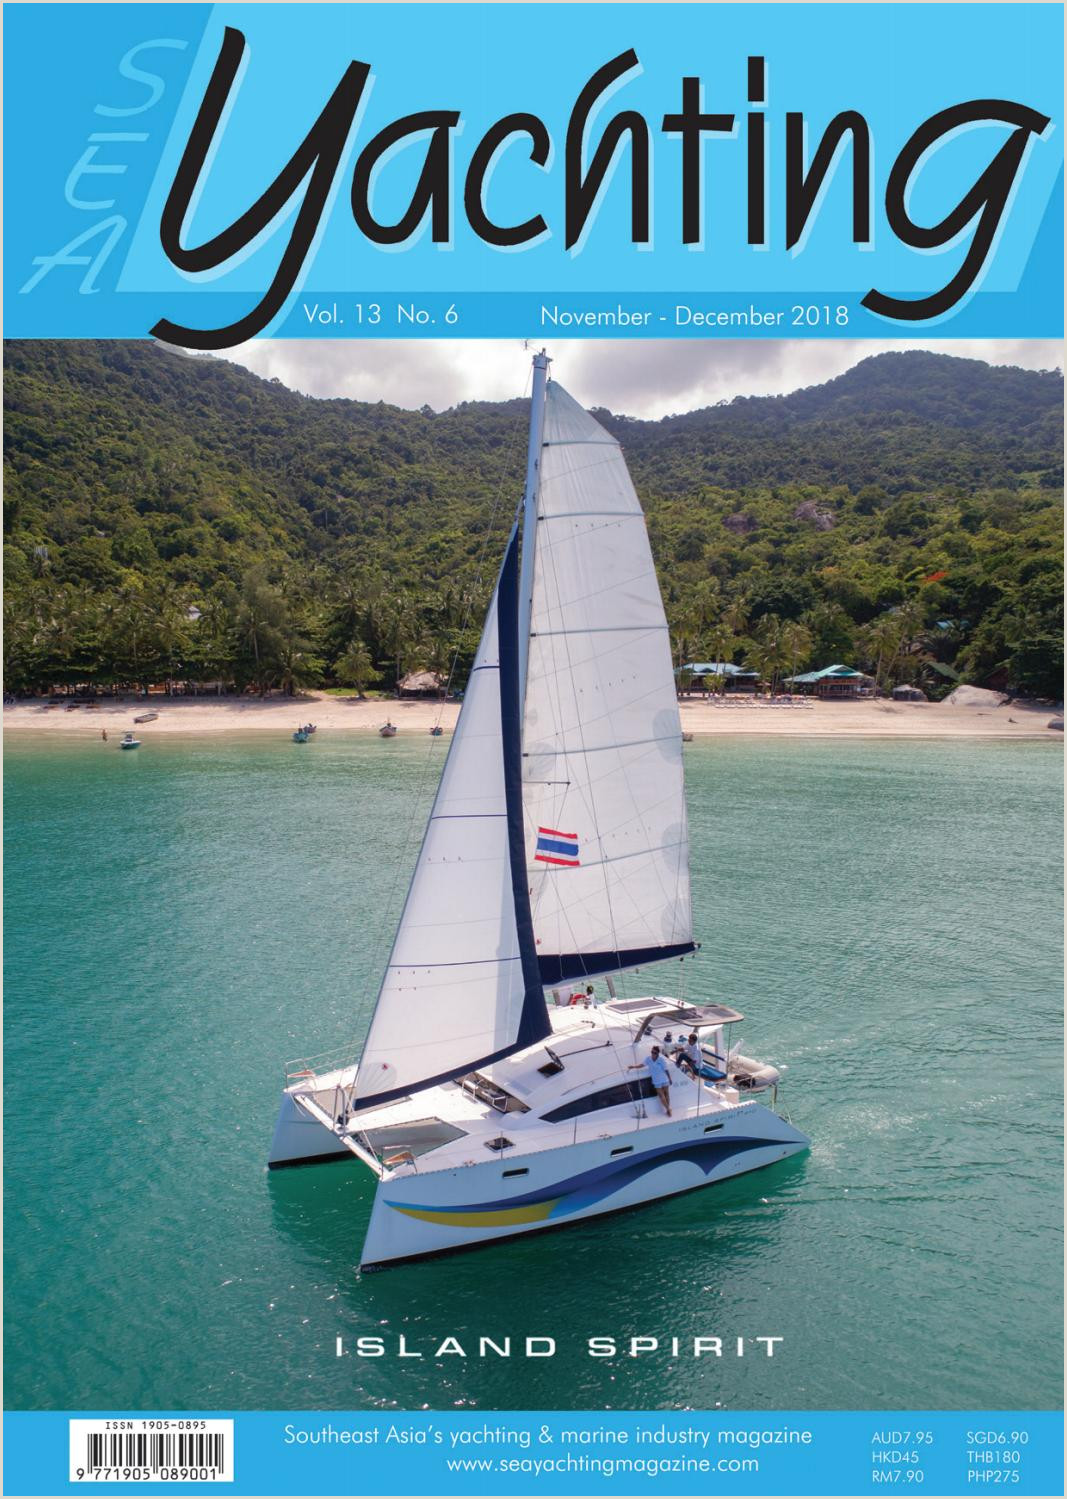 Fedex Office Retractable Banner Sea Yachting 13 6 Nov Dec 18 By Easy Branches Co Ltd Issuu